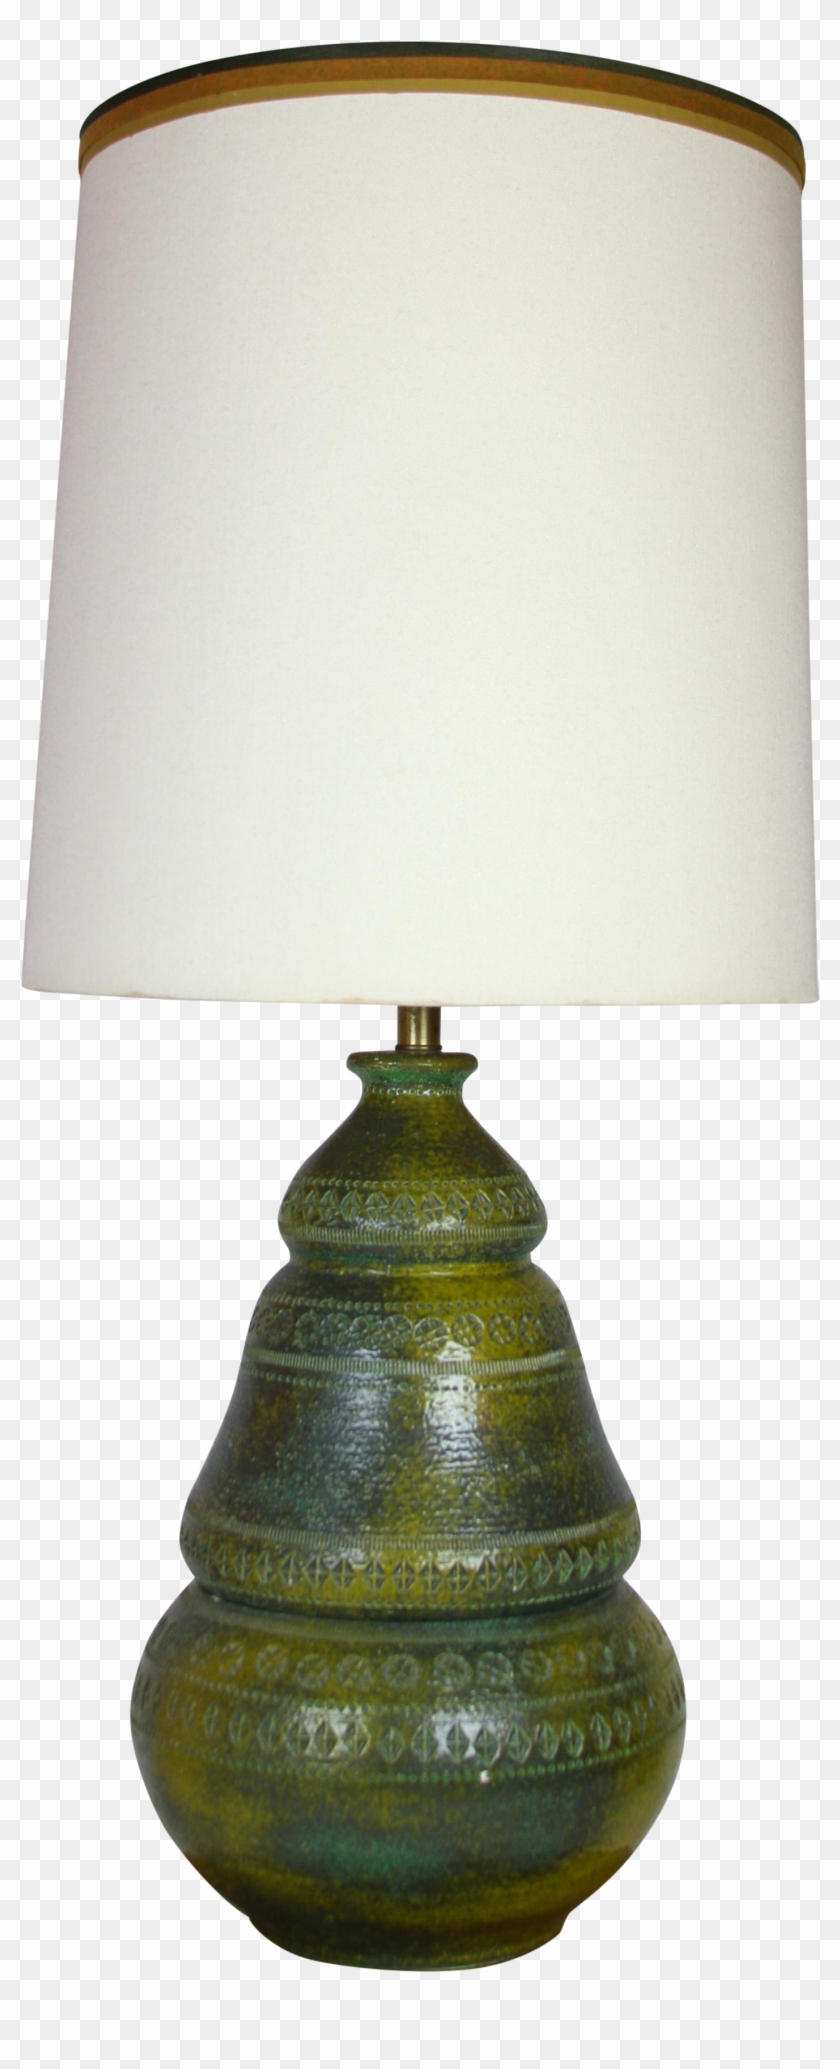 Lamps lampshade hd png. Lamp clipart lalten